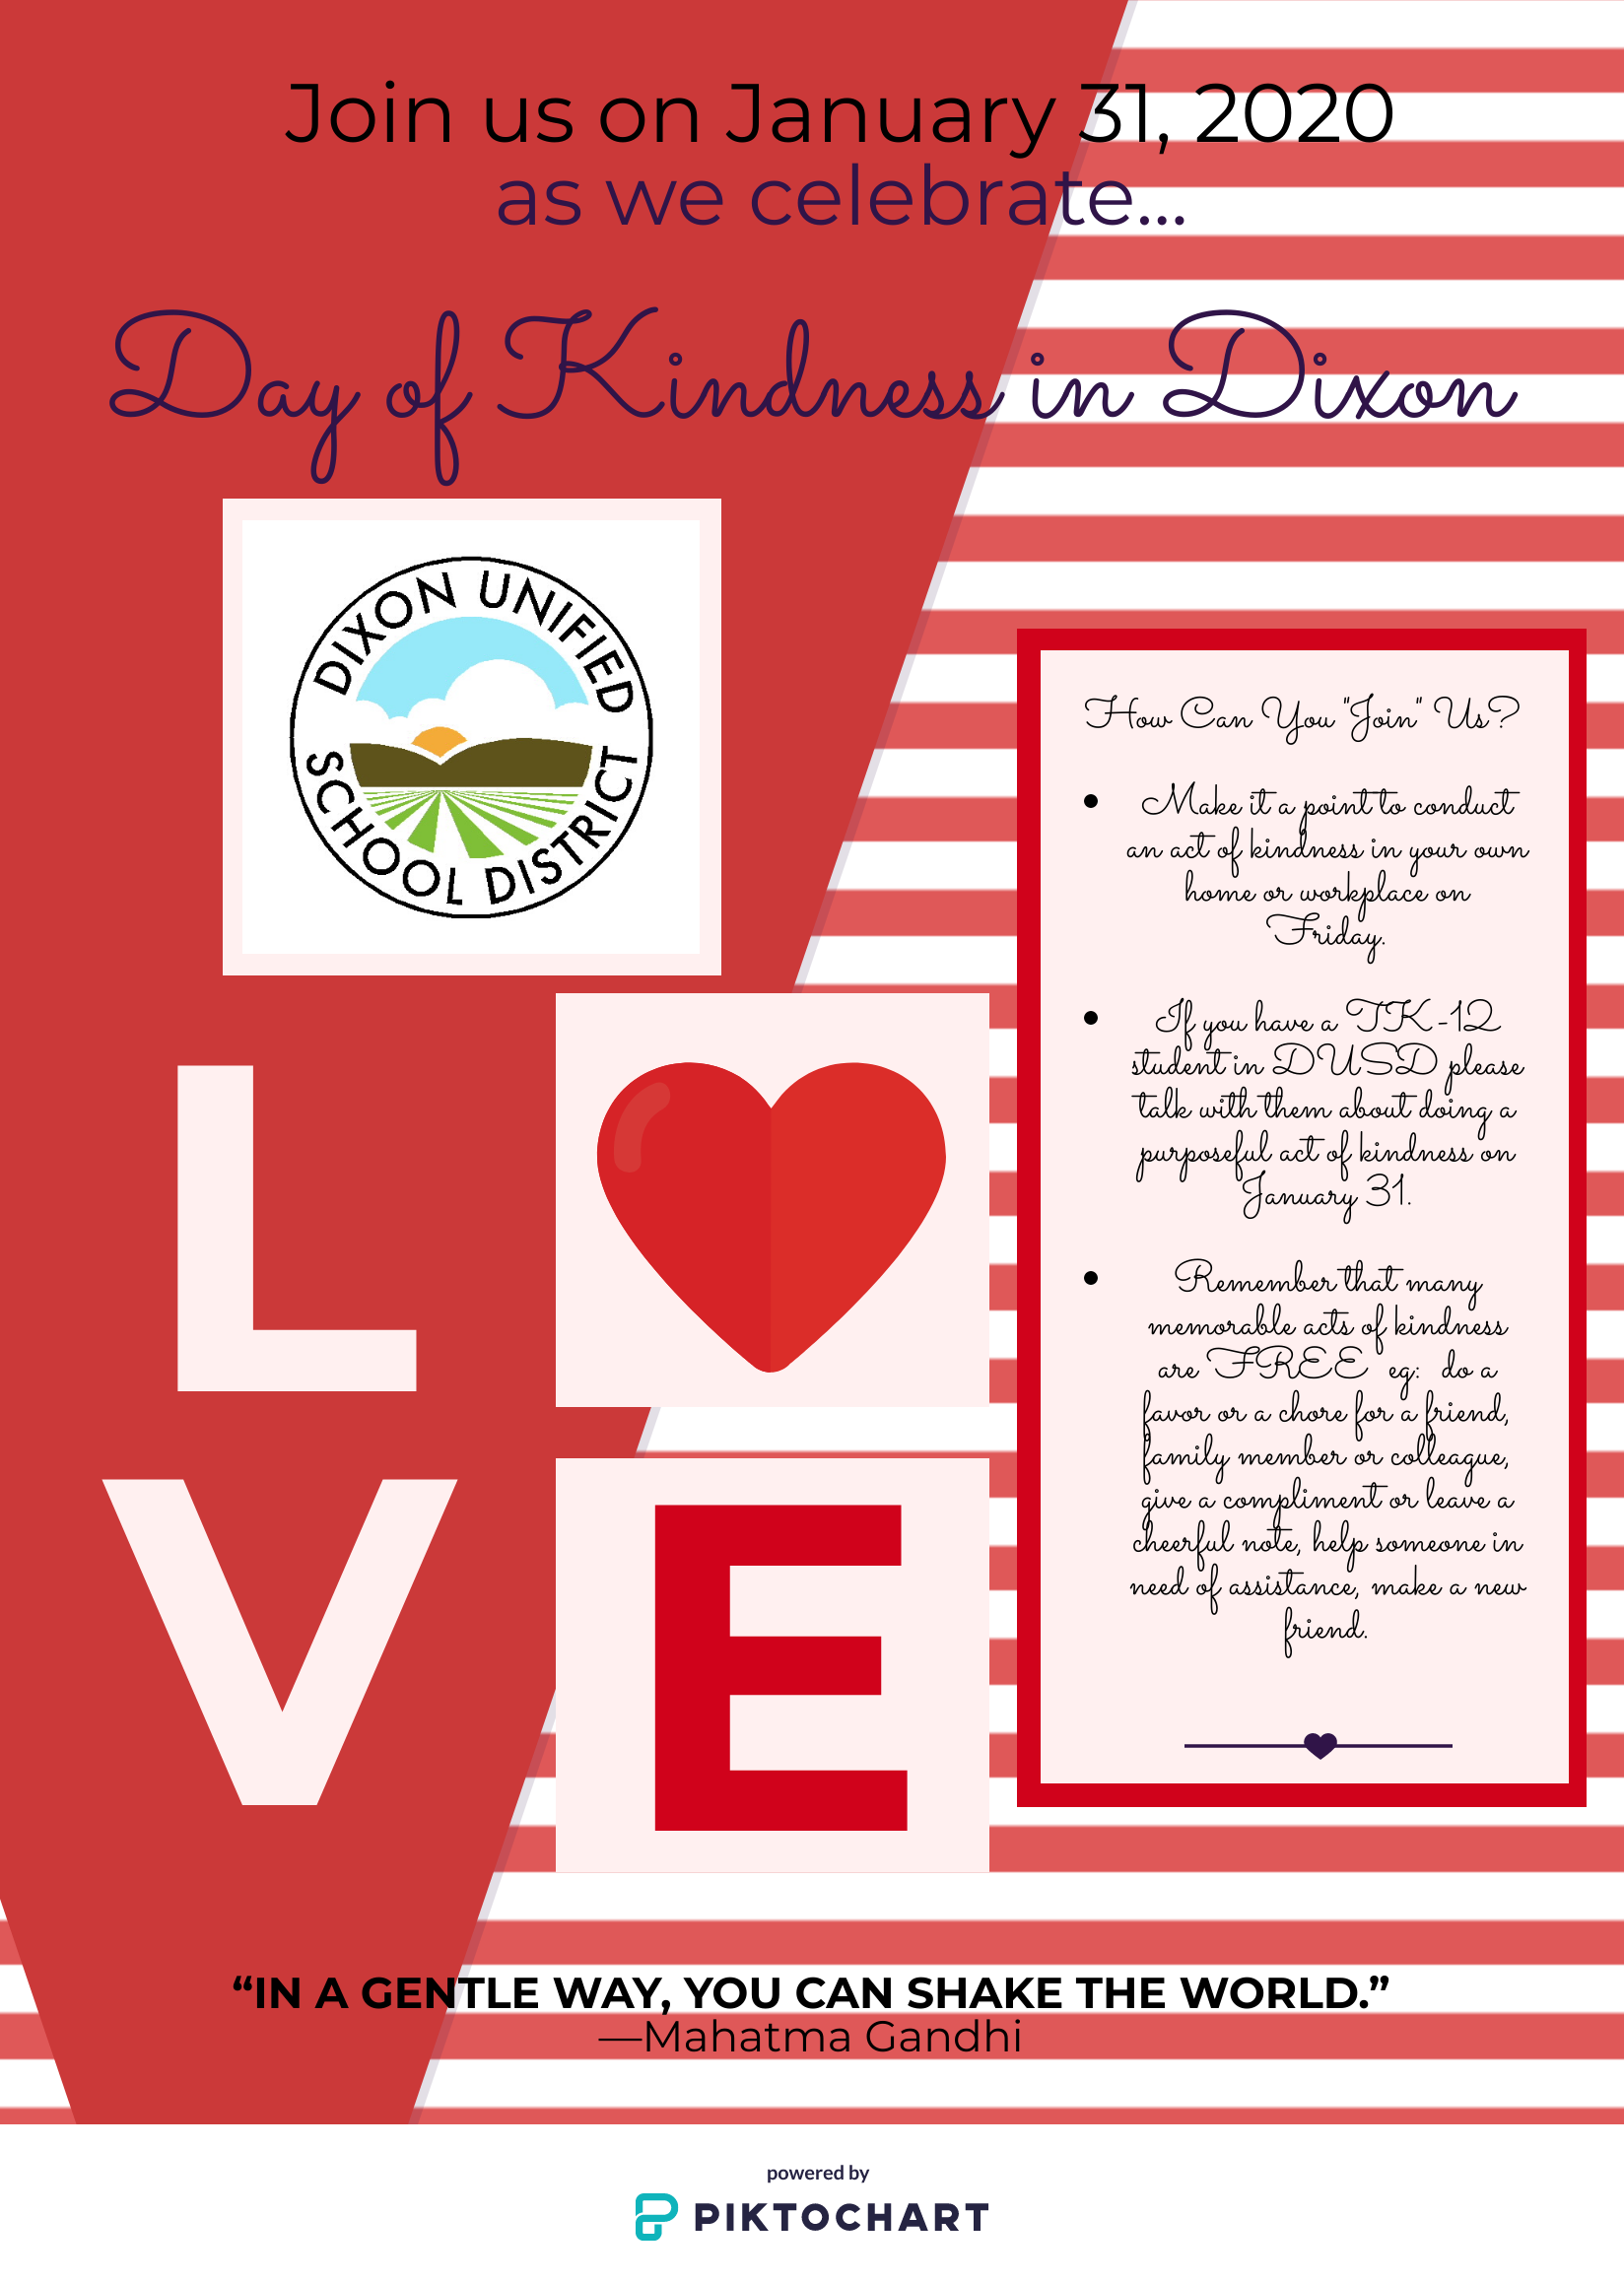 Dixon Day of Kindness January 31st